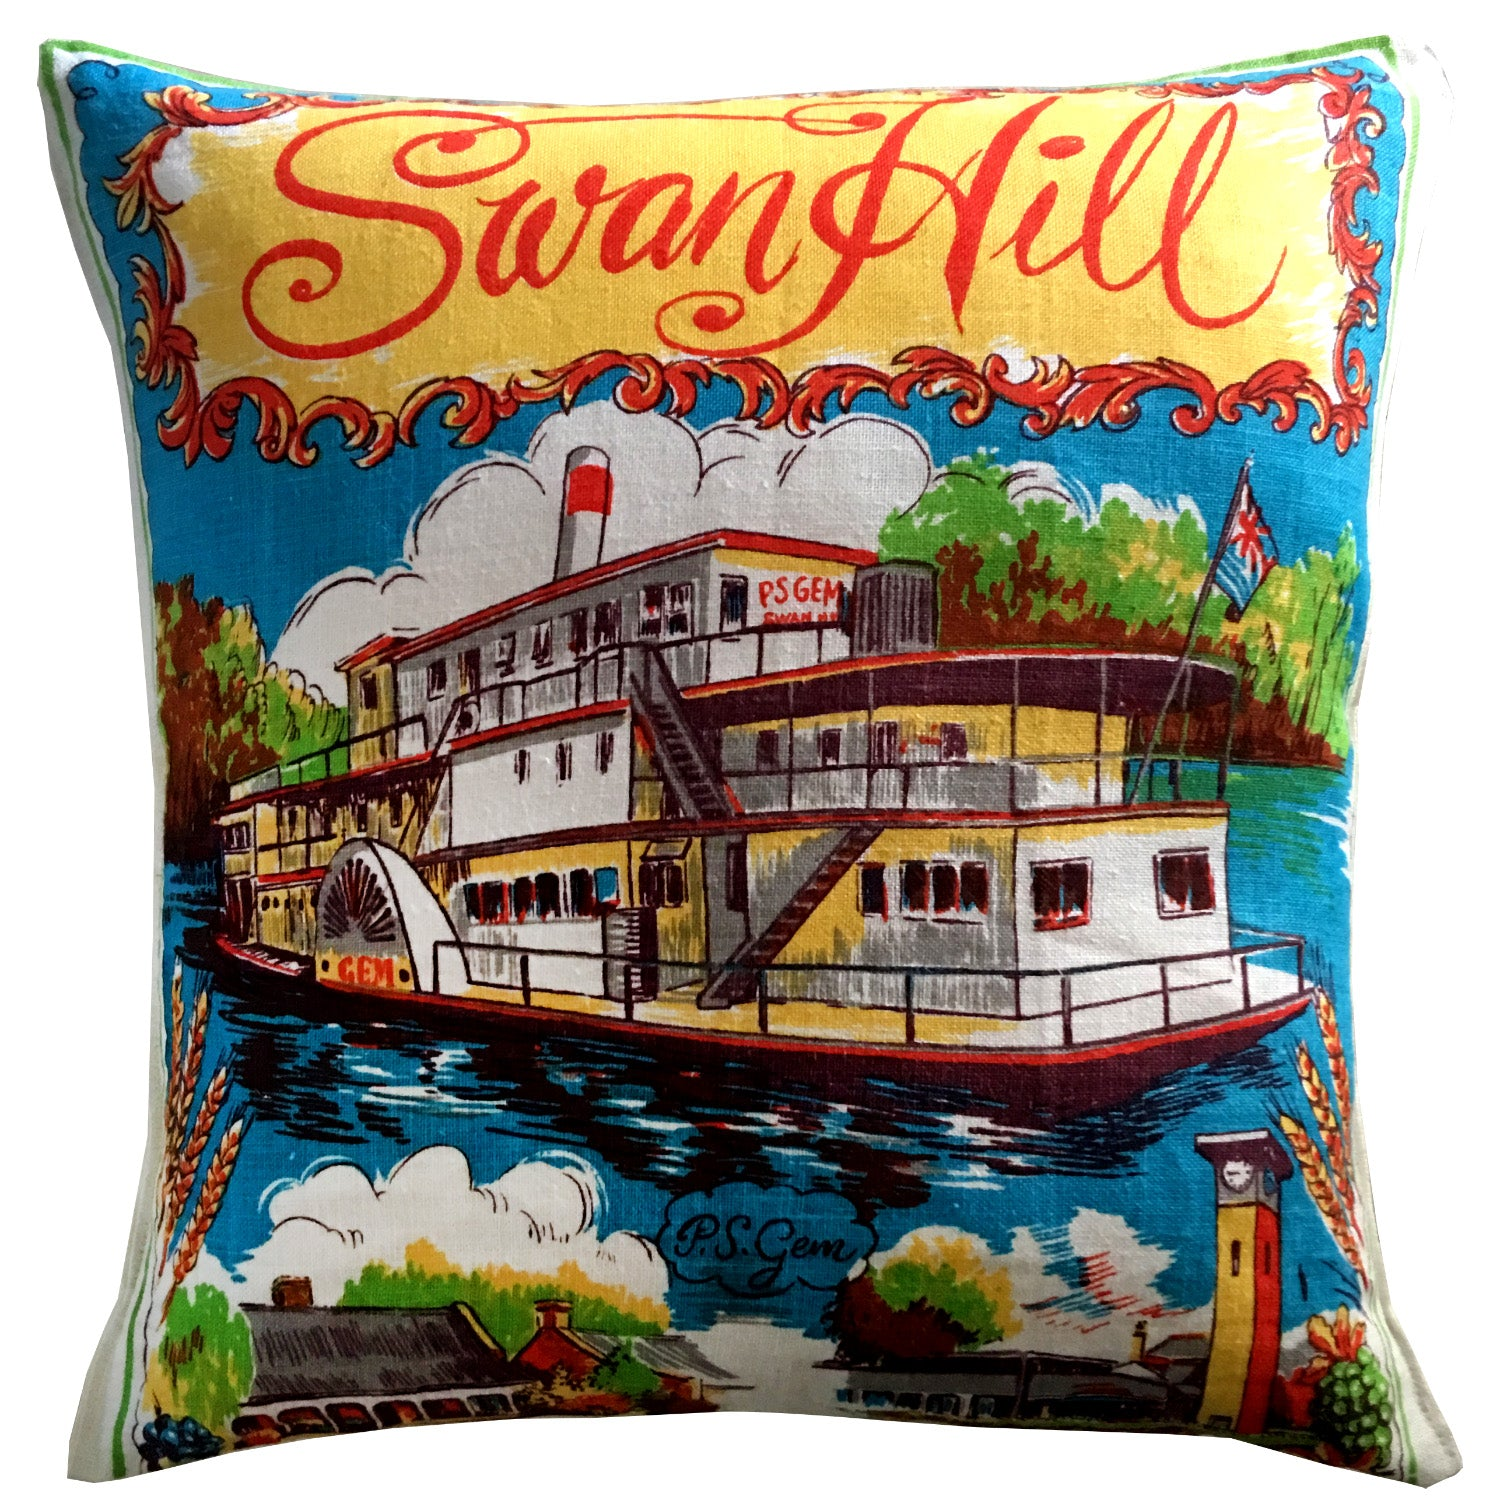 Swan Hill souvenir teatowel cushion cover